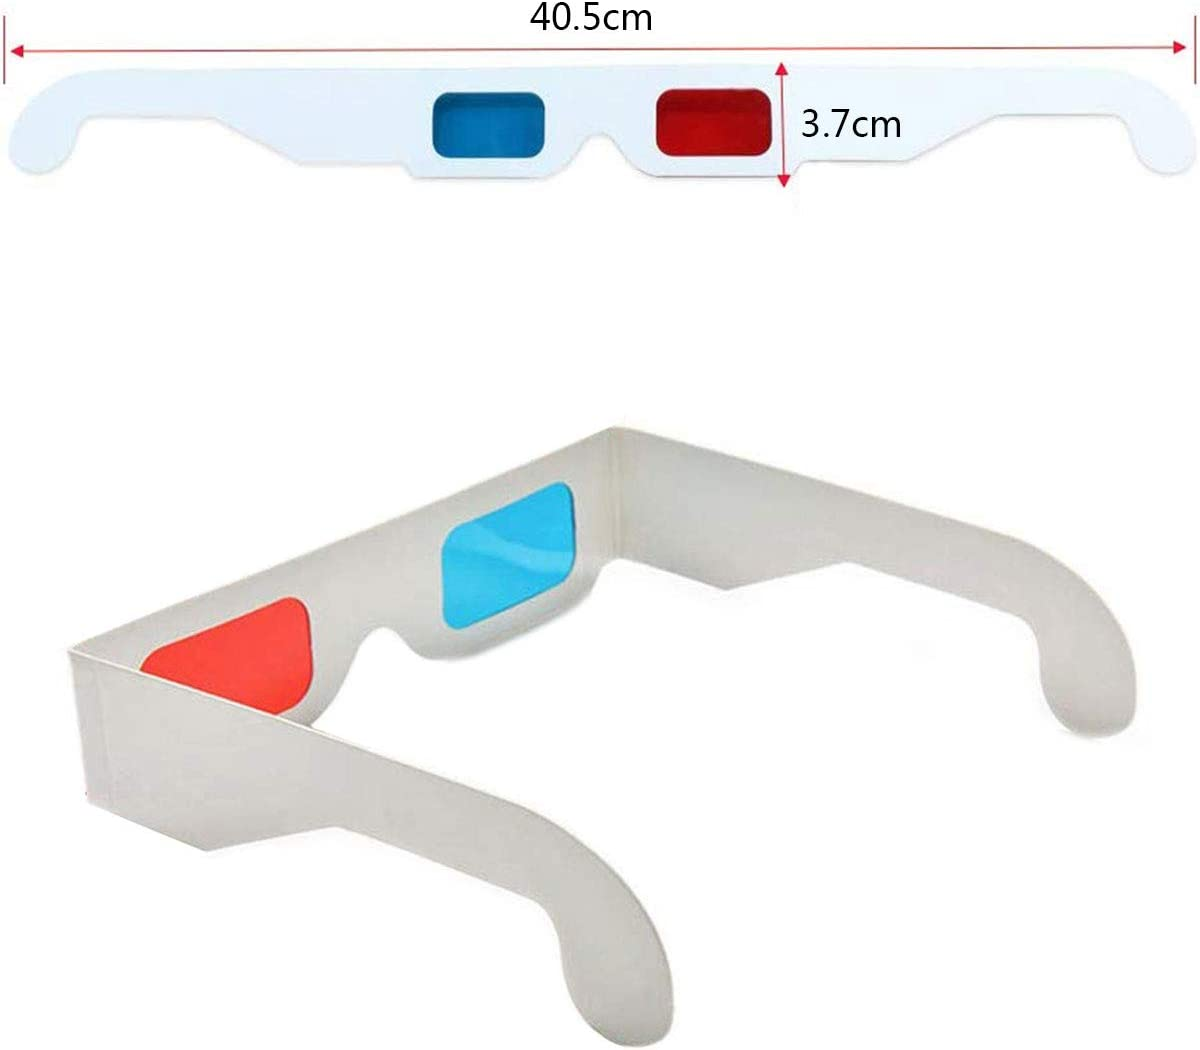 3D Glasses 10 Pairs of Paper Red and Blue Stereo Eyeglasses for Movie Decoration